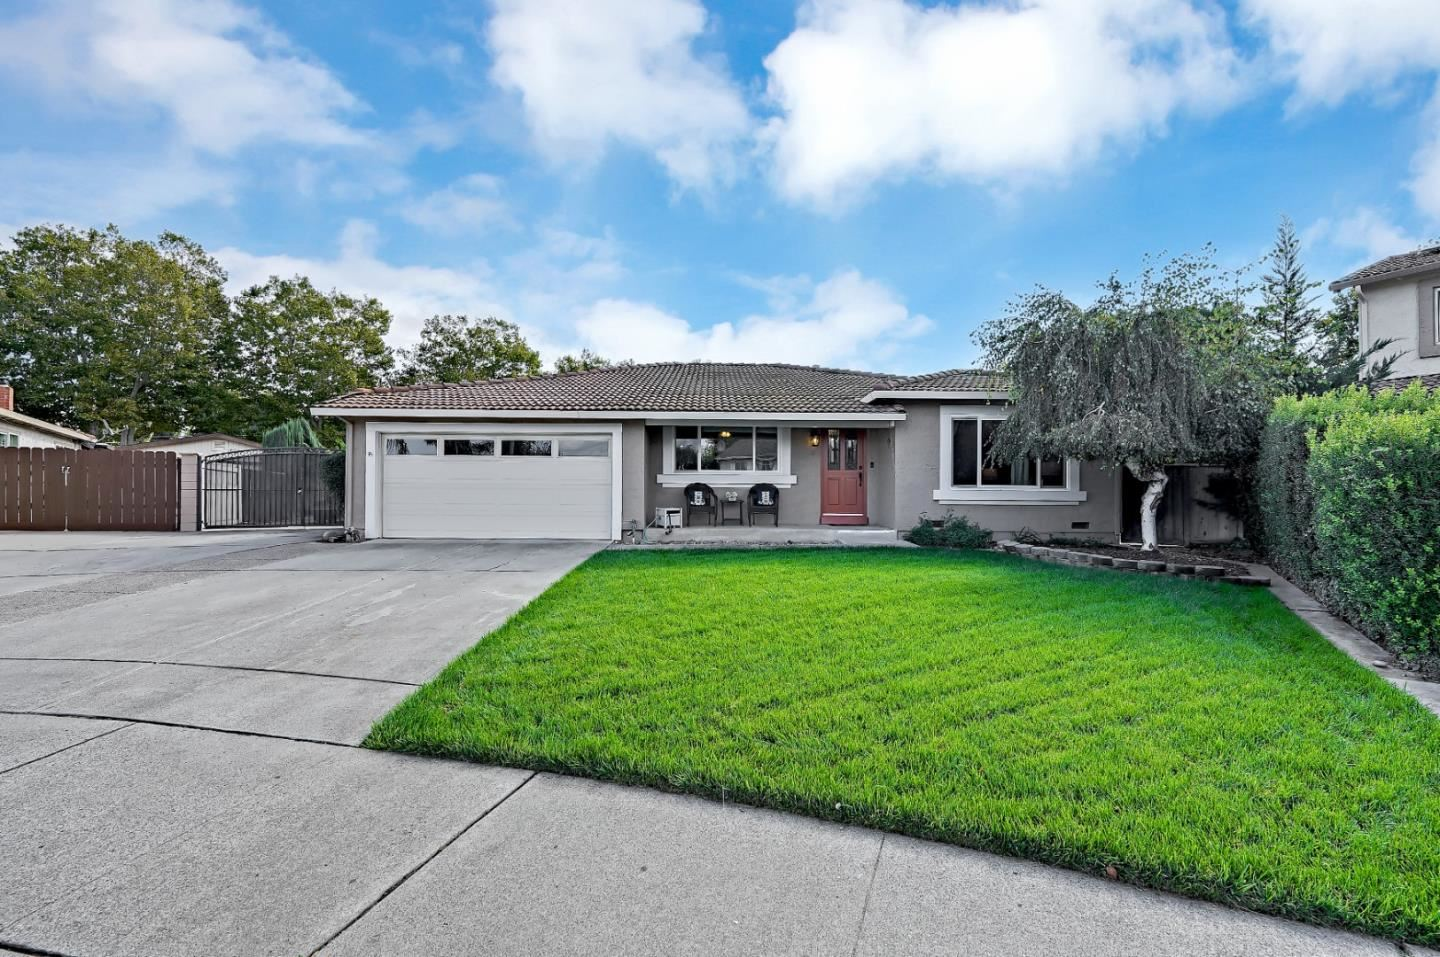 Photo for 4 Stratford Place, GILROY, CA 95020 (MLS # ML81866032)